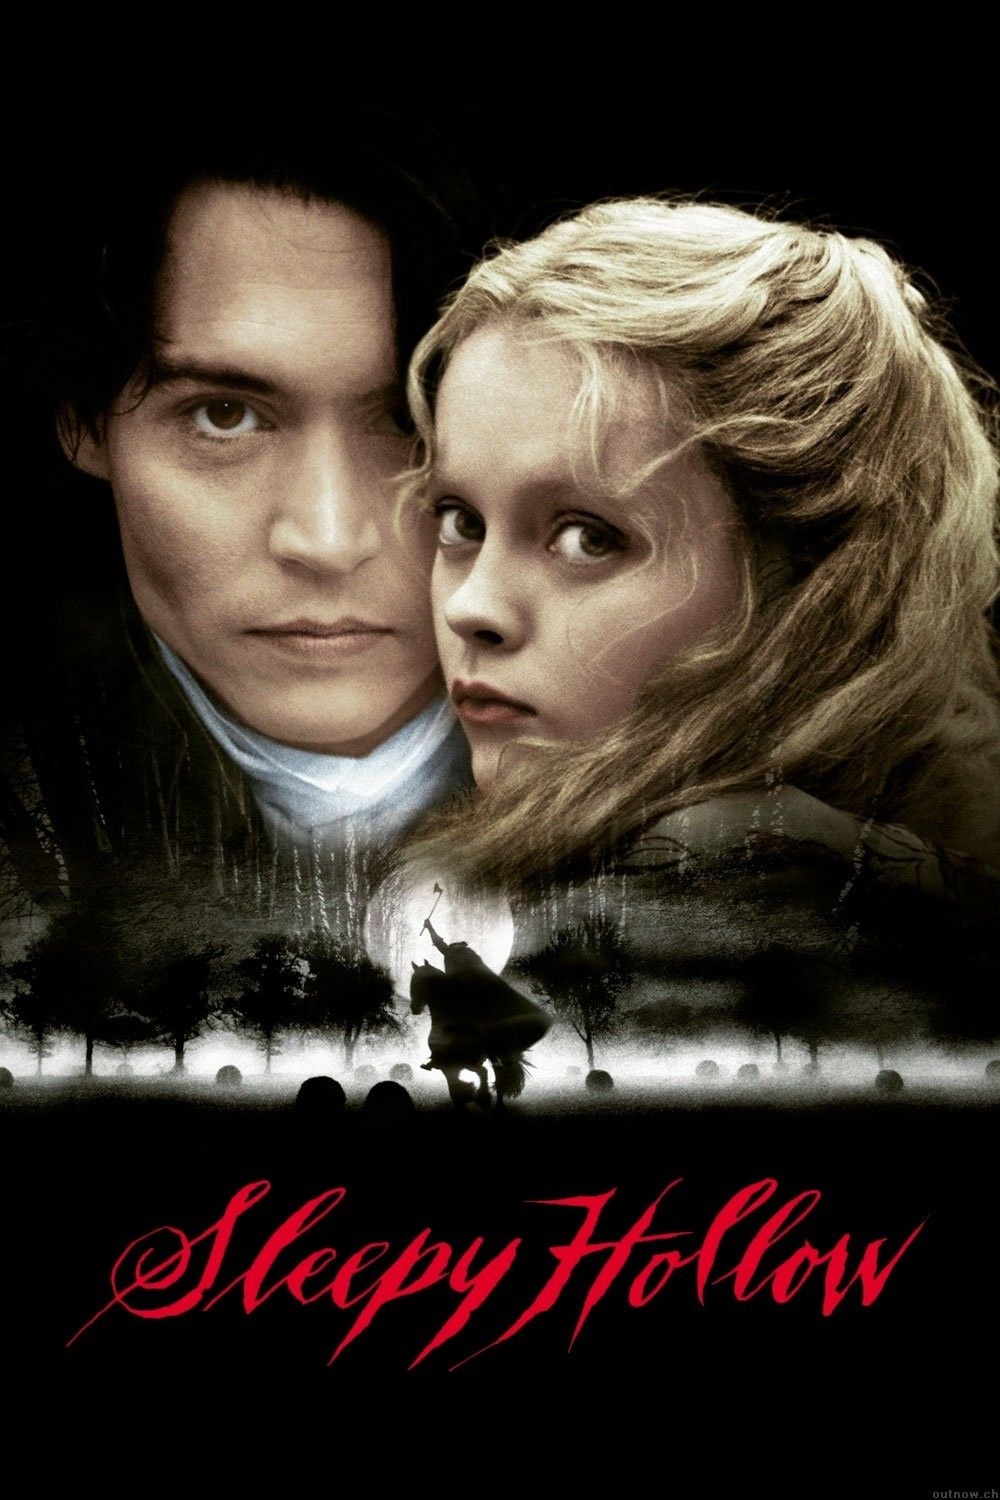 Love This Film Based On The Legend Of Sleepy Hollow By